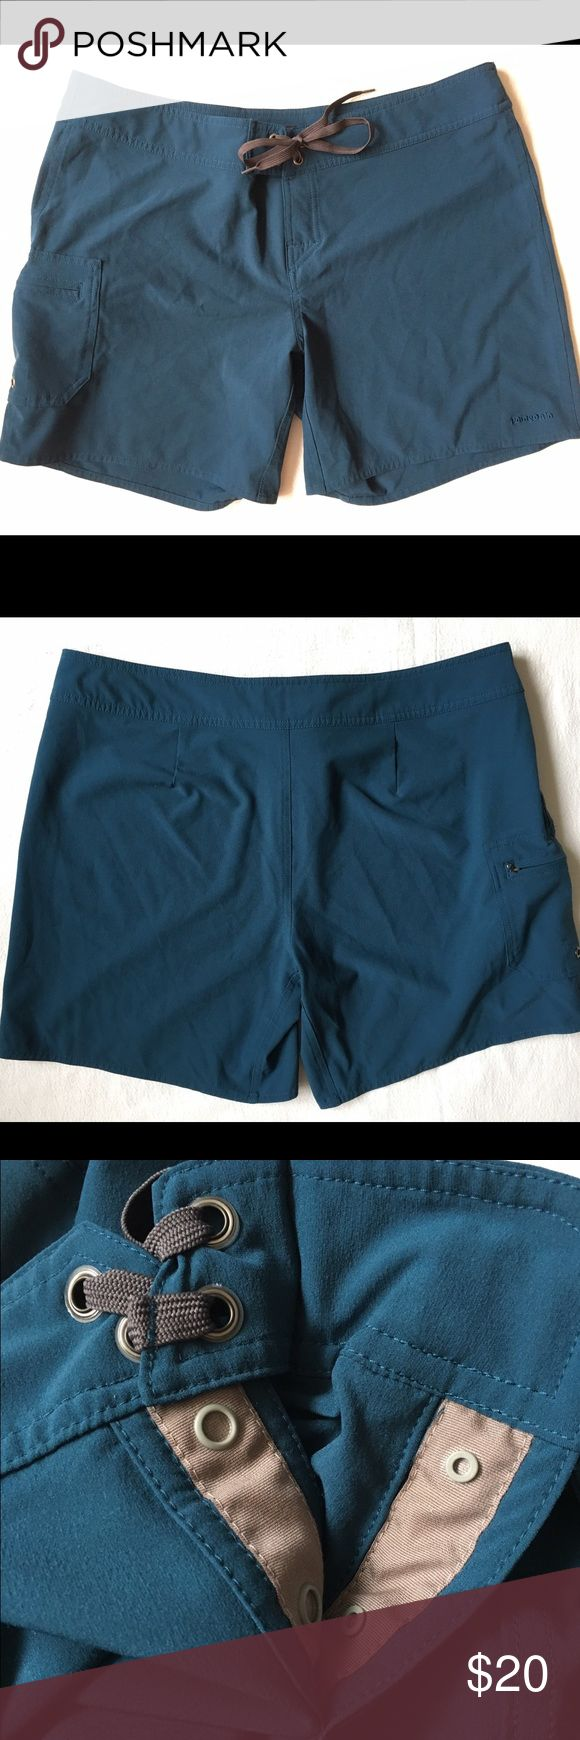 Women's Patagonia Outdoor Board Shorts | Teal EUC! These are in like-new condition! Worn once. These are women's Patagonia board shorts in a size 14. Includes pocket and Lace up closure with snaps. Patagonia Shorts